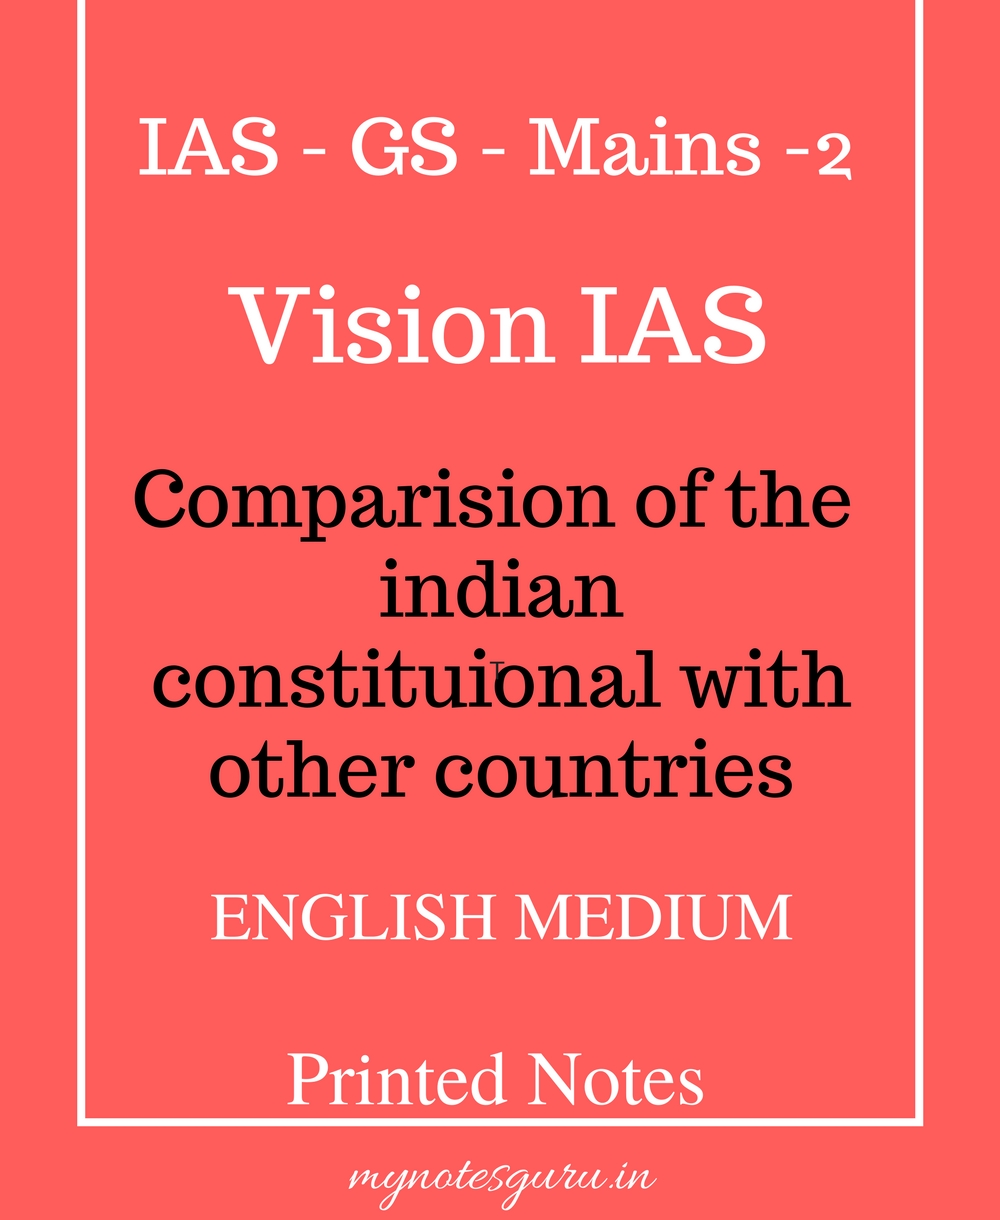 IAS - GS - Mains - 2 - Vision IAS - Comparision of the Indian  Constitutional With Other Countries - English Medium - Printed Notes